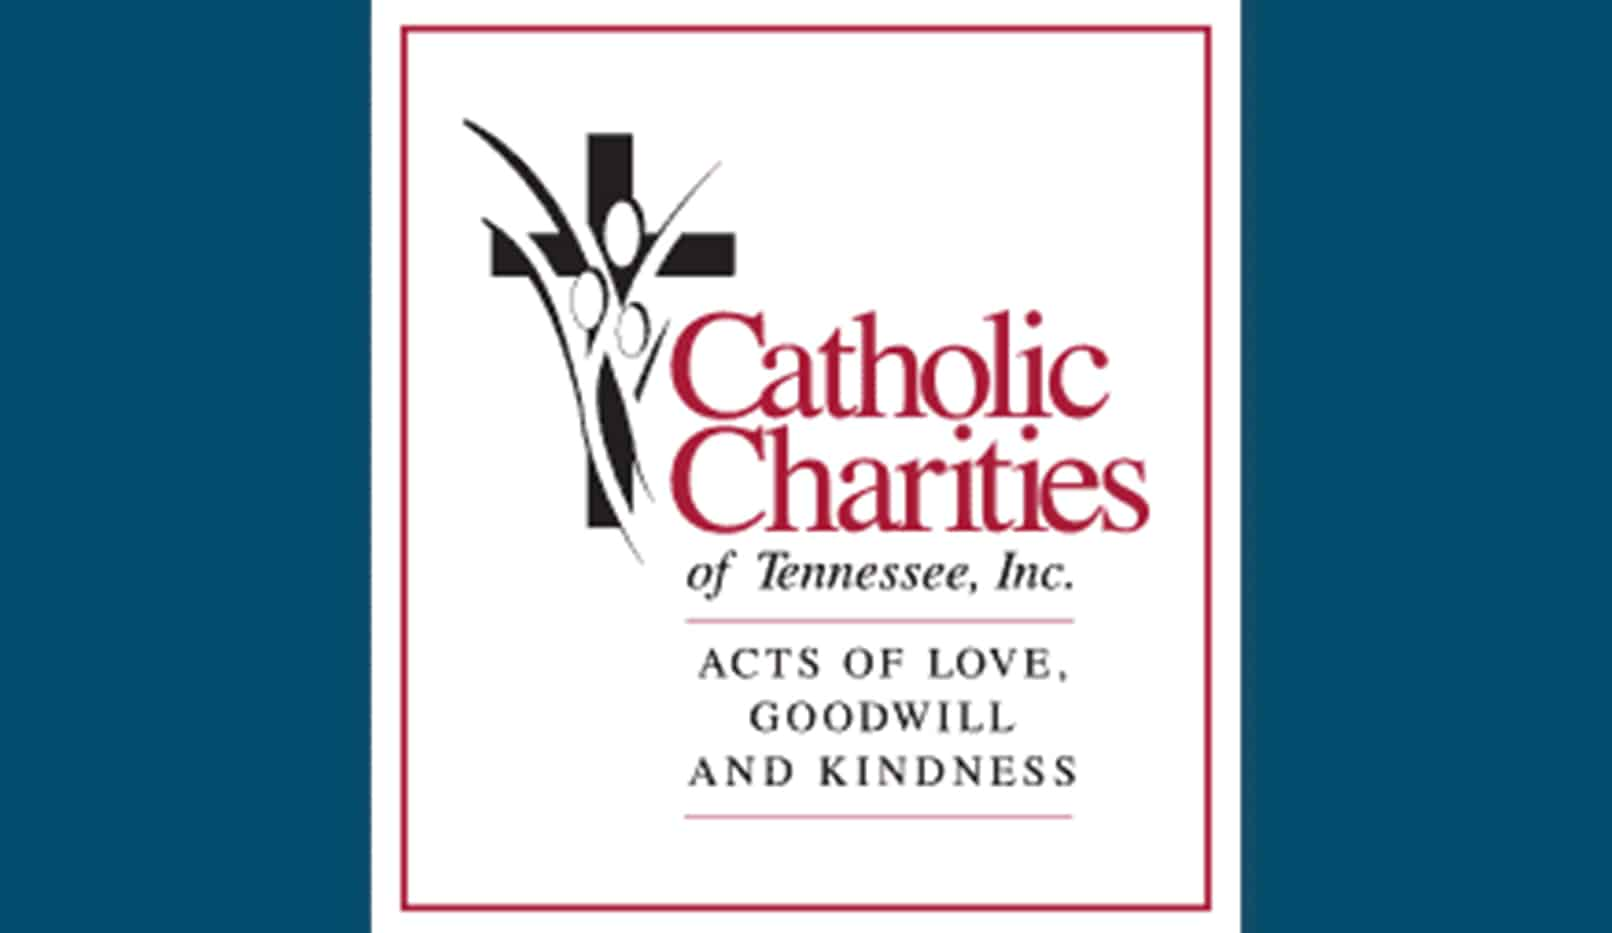 $7.3M grant enables Catholic Charities to expand into more counties